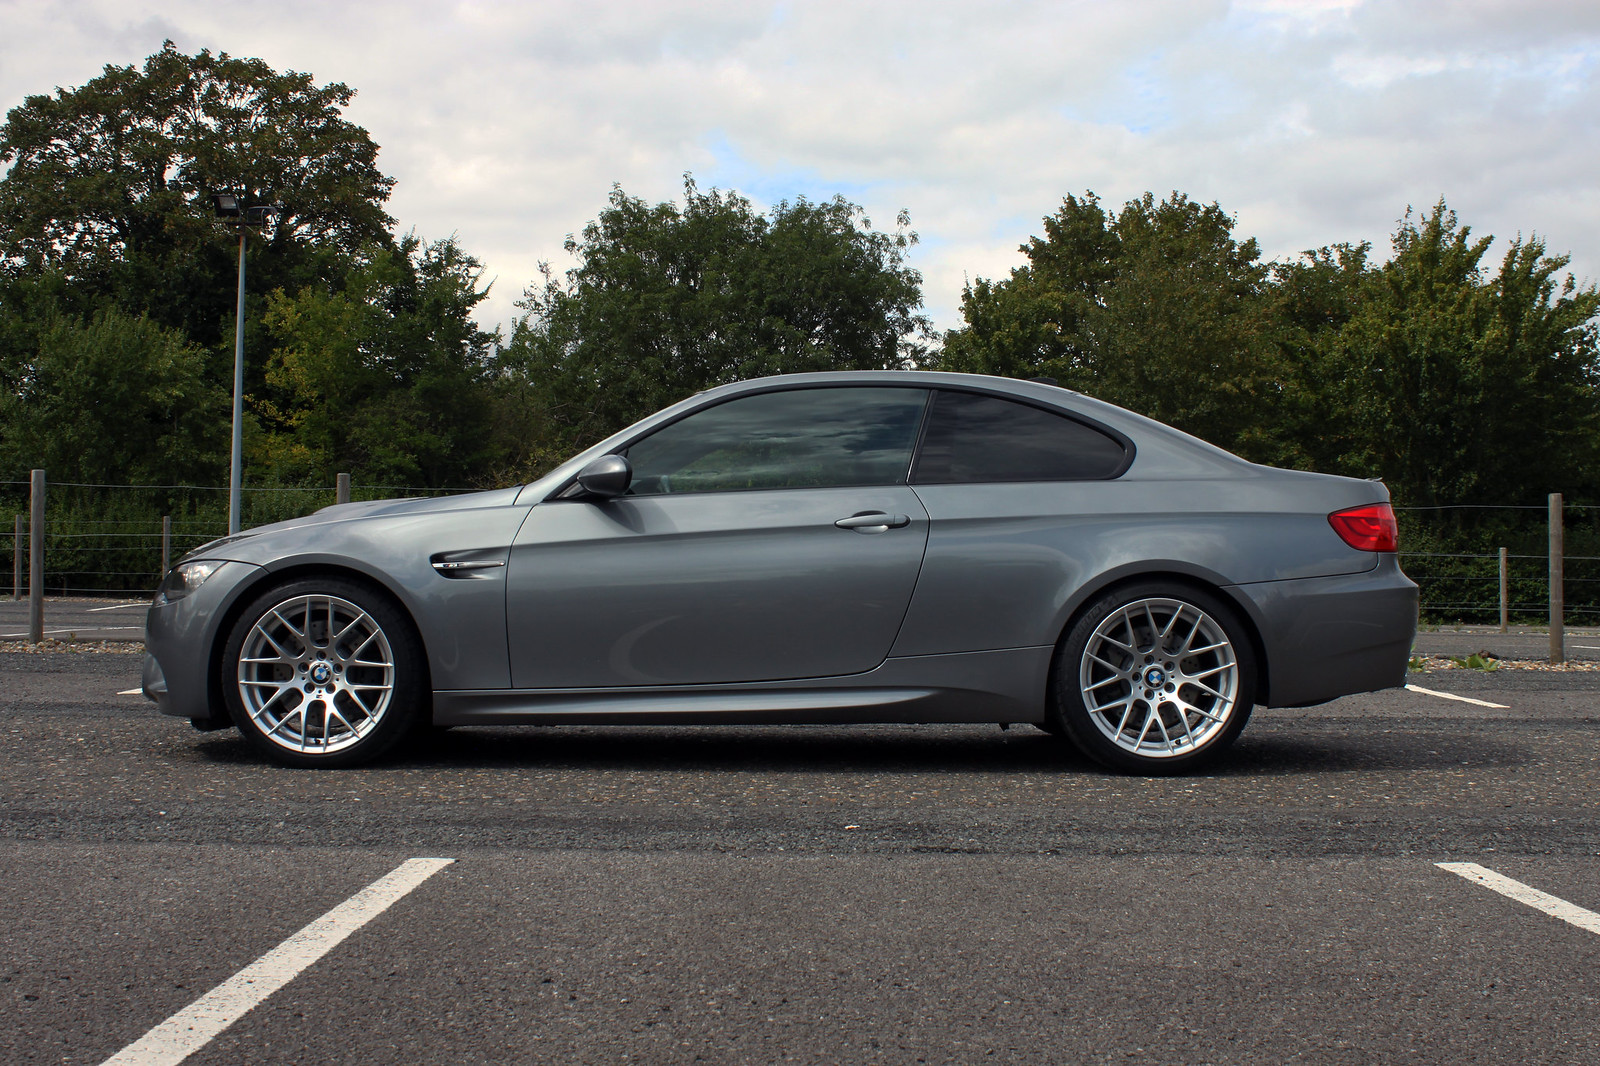 e92 m3 competition wheels added the m3cutters uk bmw. Black Bedroom Furniture Sets. Home Design Ideas